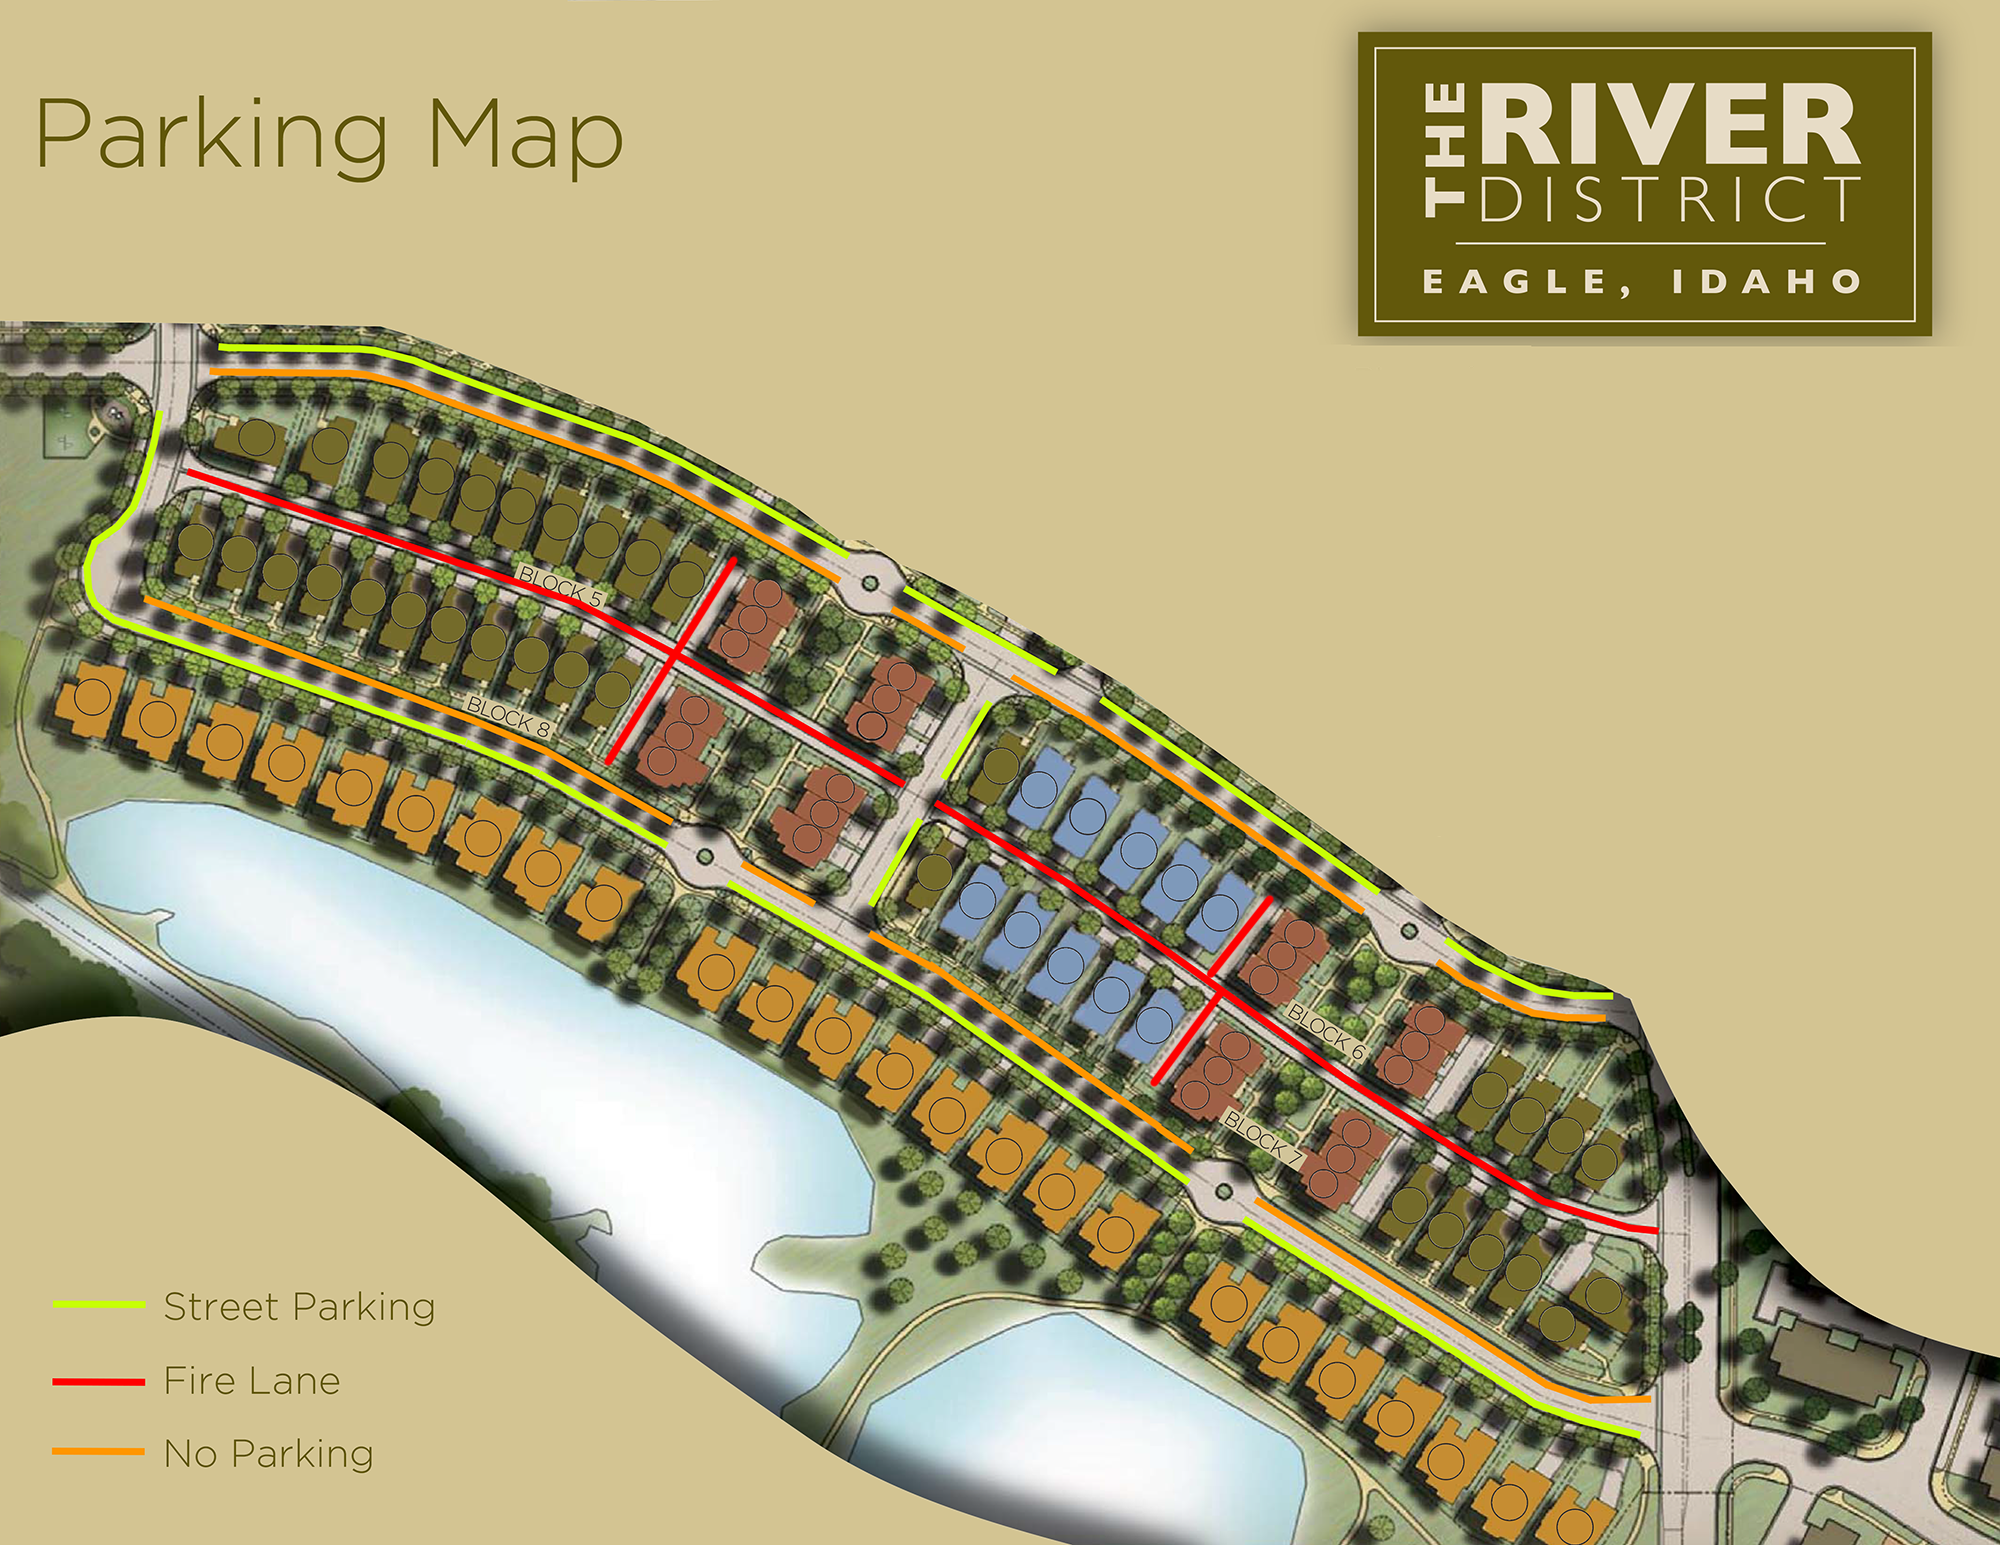 River District Parking Map 7-24-18 no rules